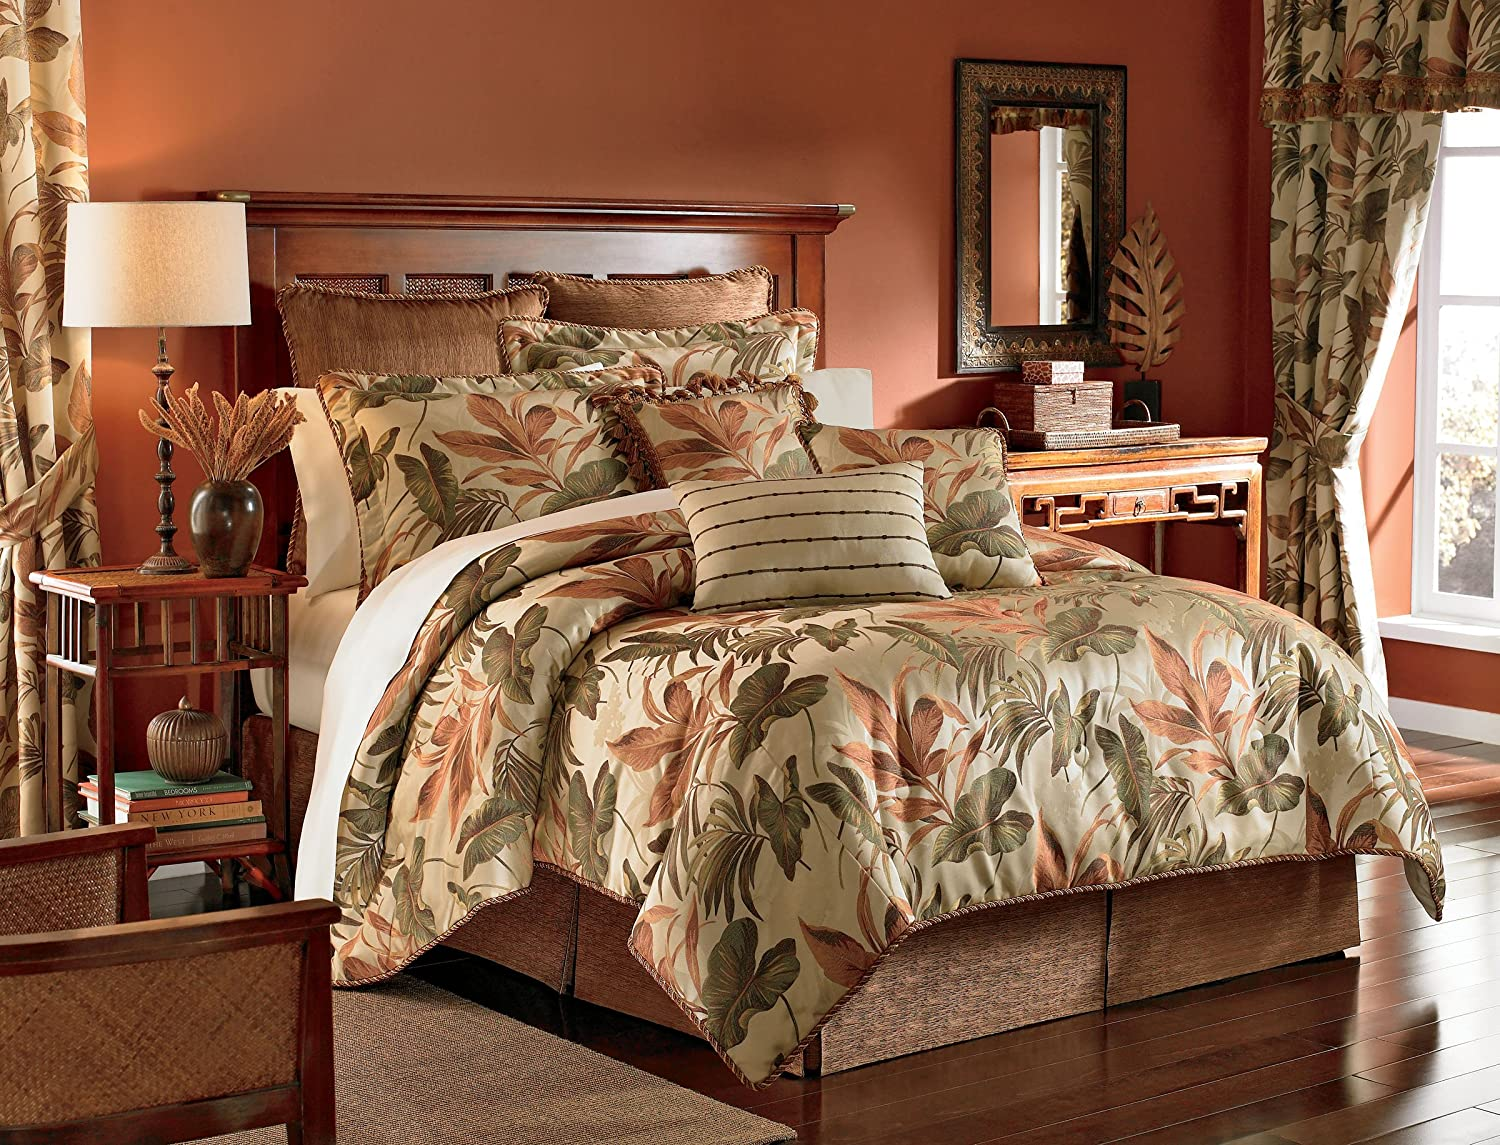 amazon king comforter sets Amazon.com: Croscill Home Fashions Bali 4 Piece Harvest King Size  amazon king comforter sets